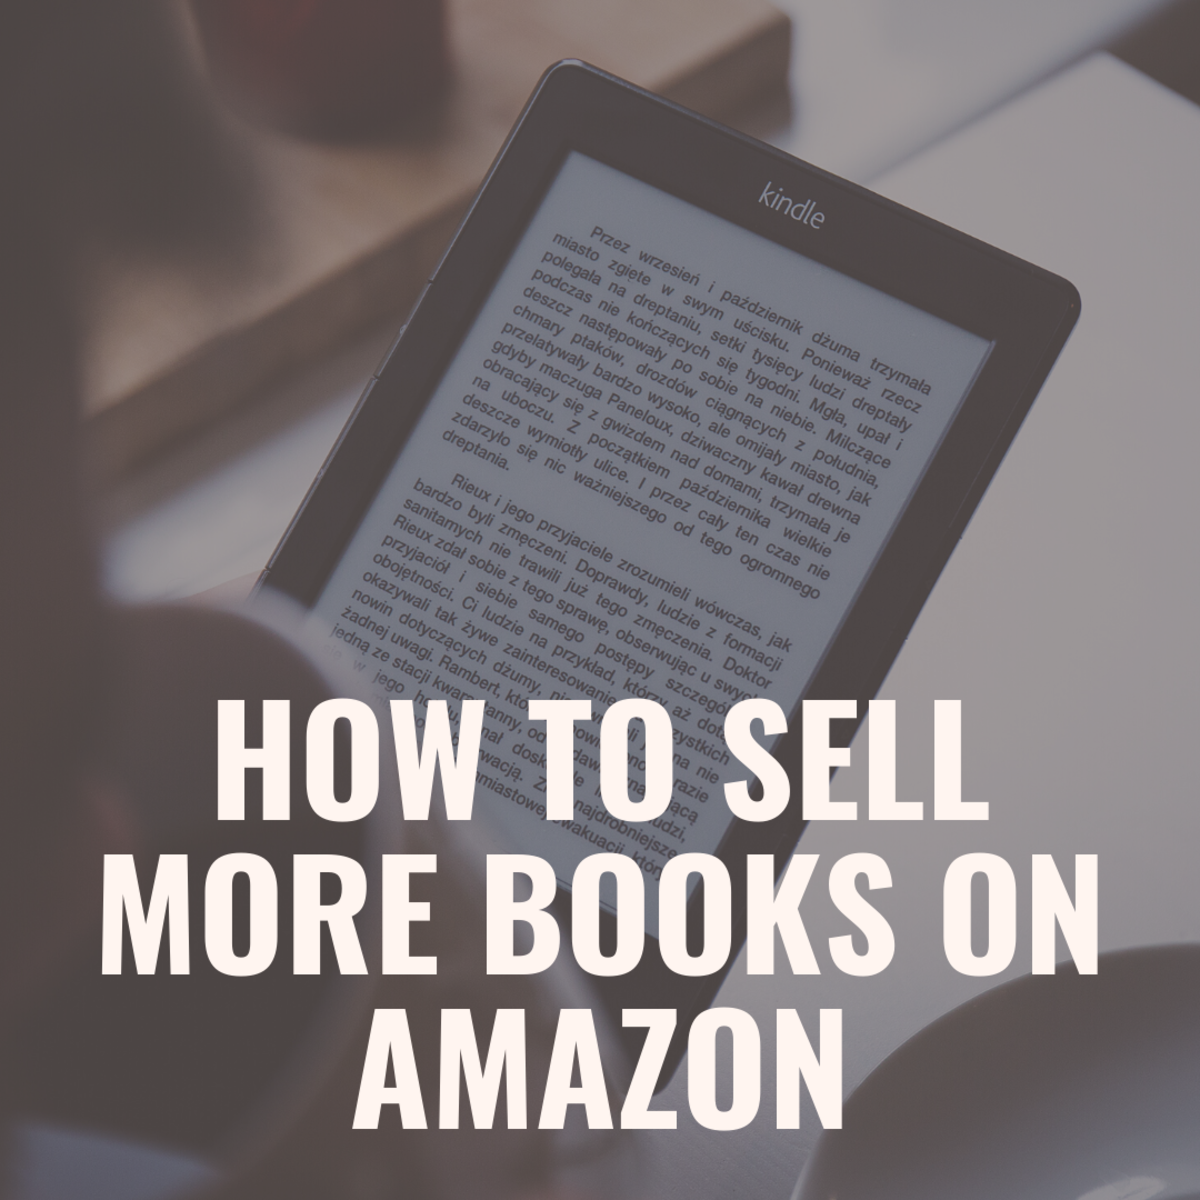 Follow these tips to start selling more books on Amazon!